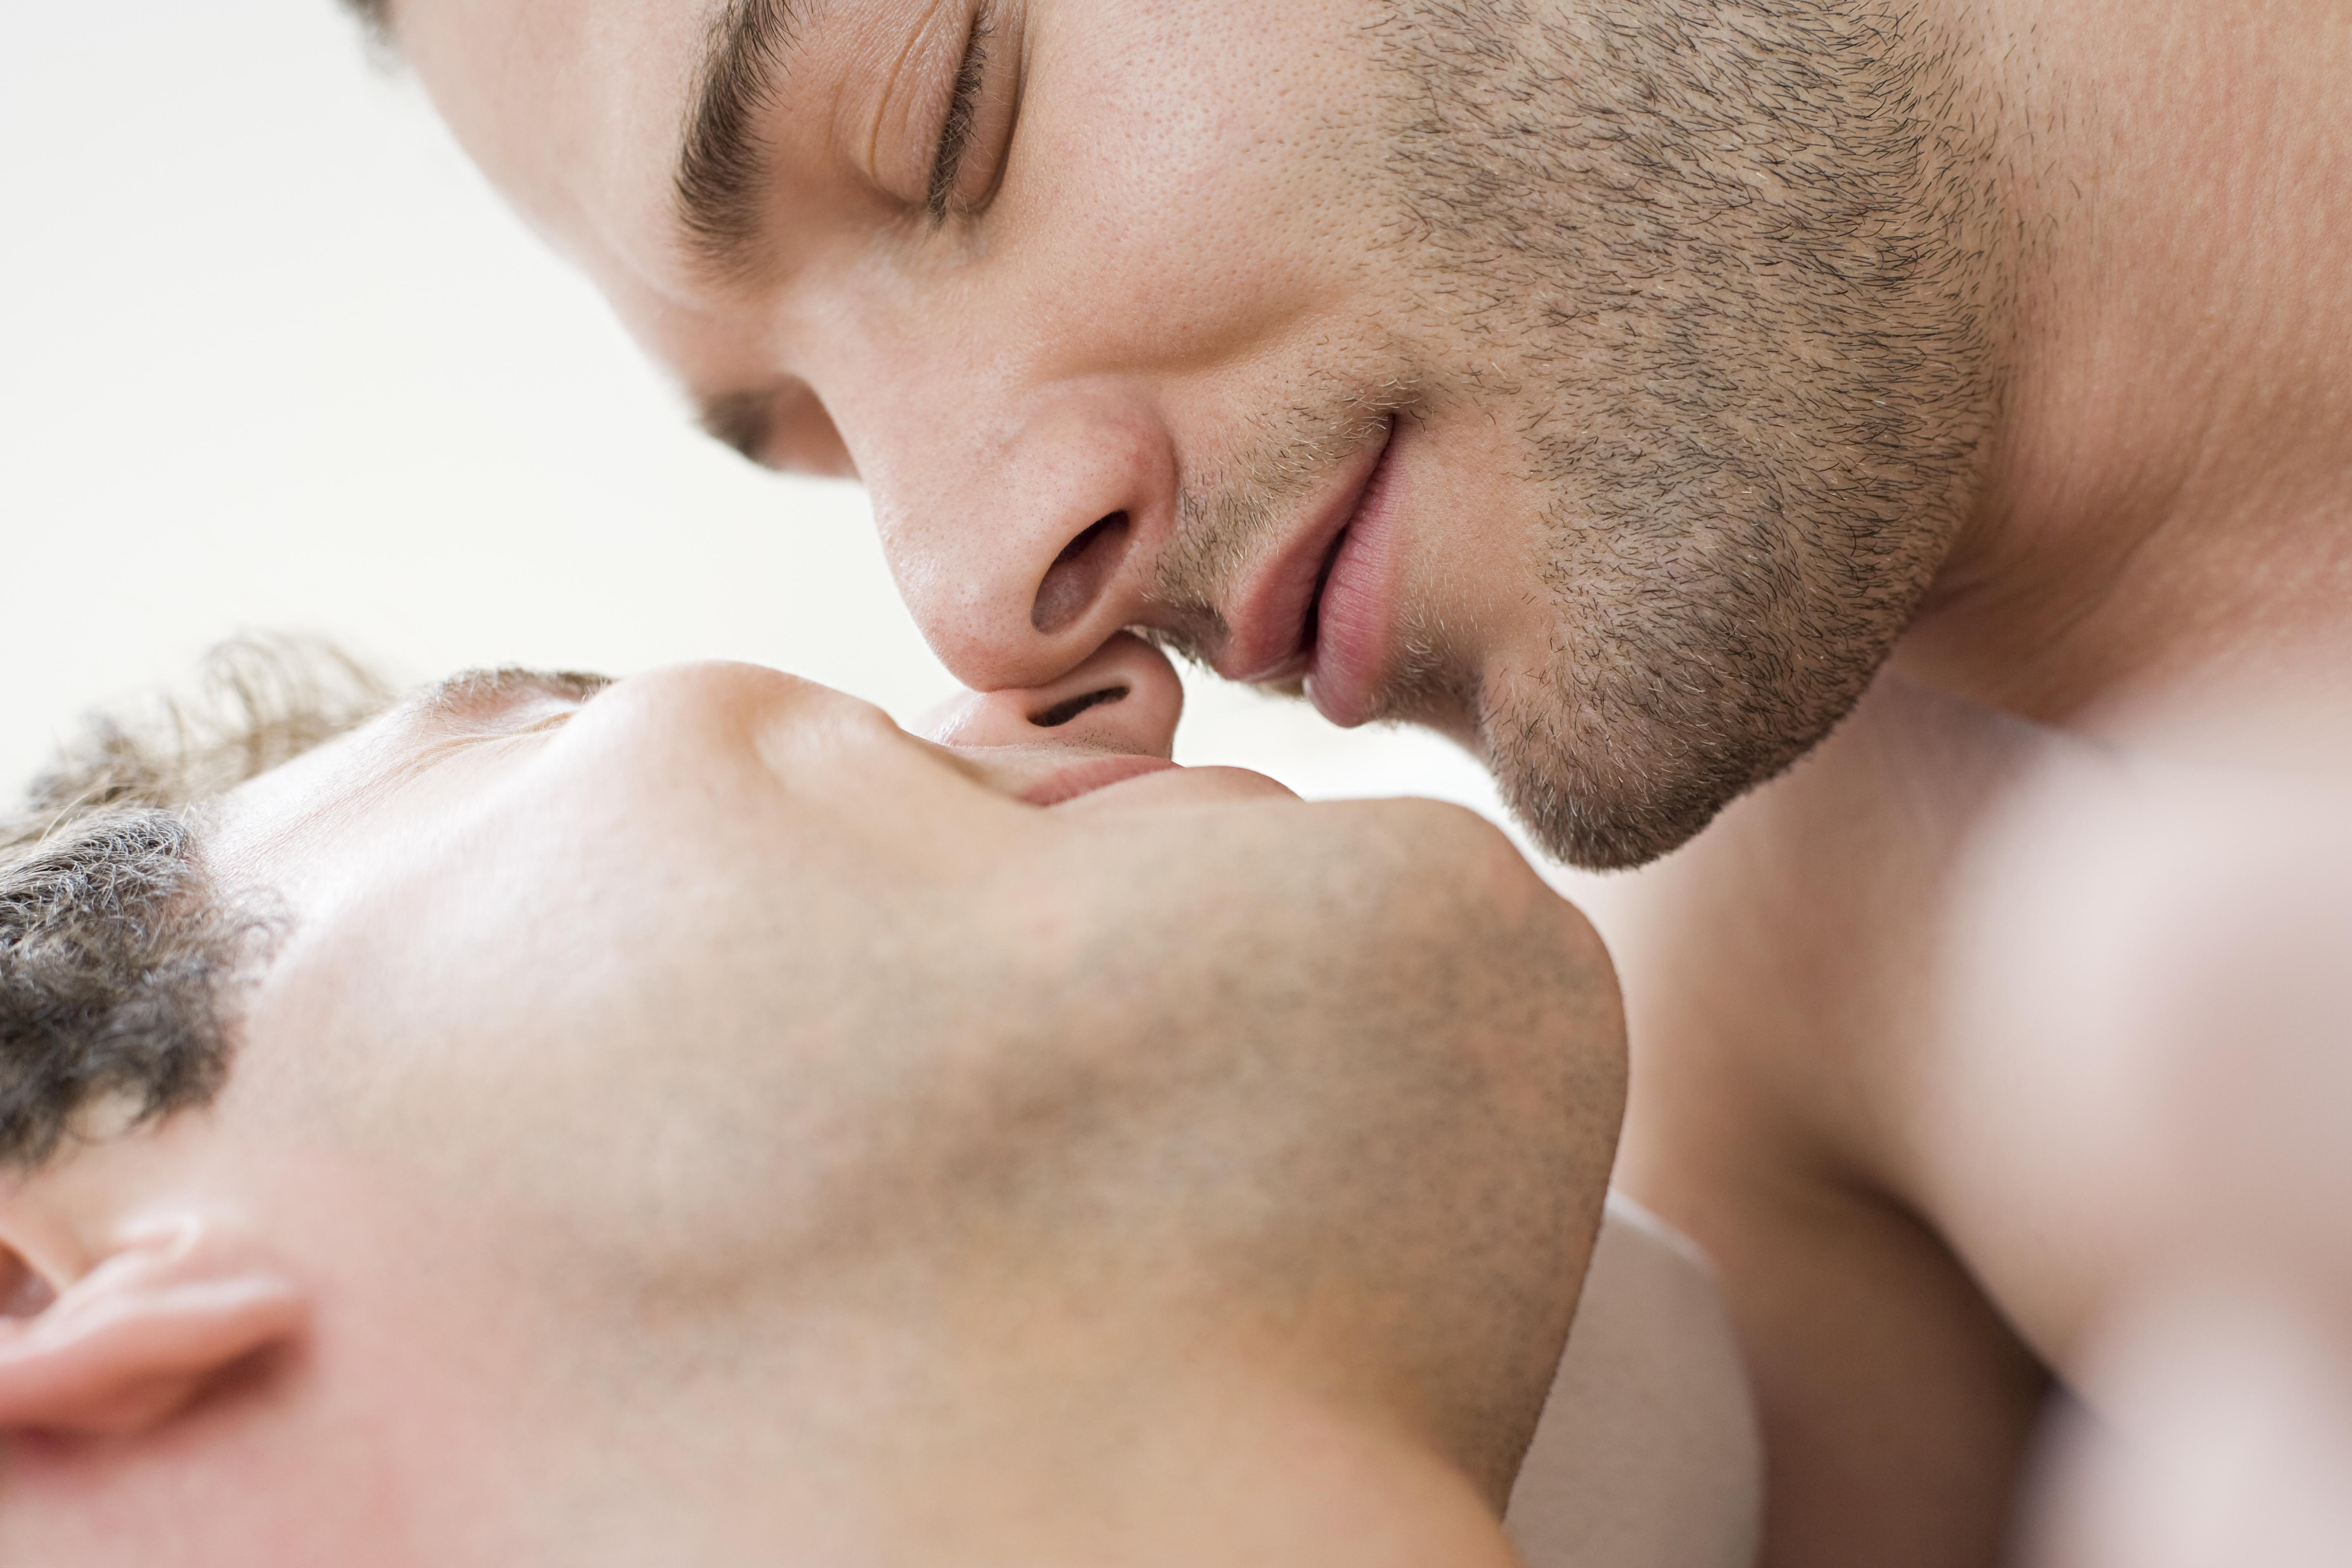 MambaOnline - Gay South Africa online - The most